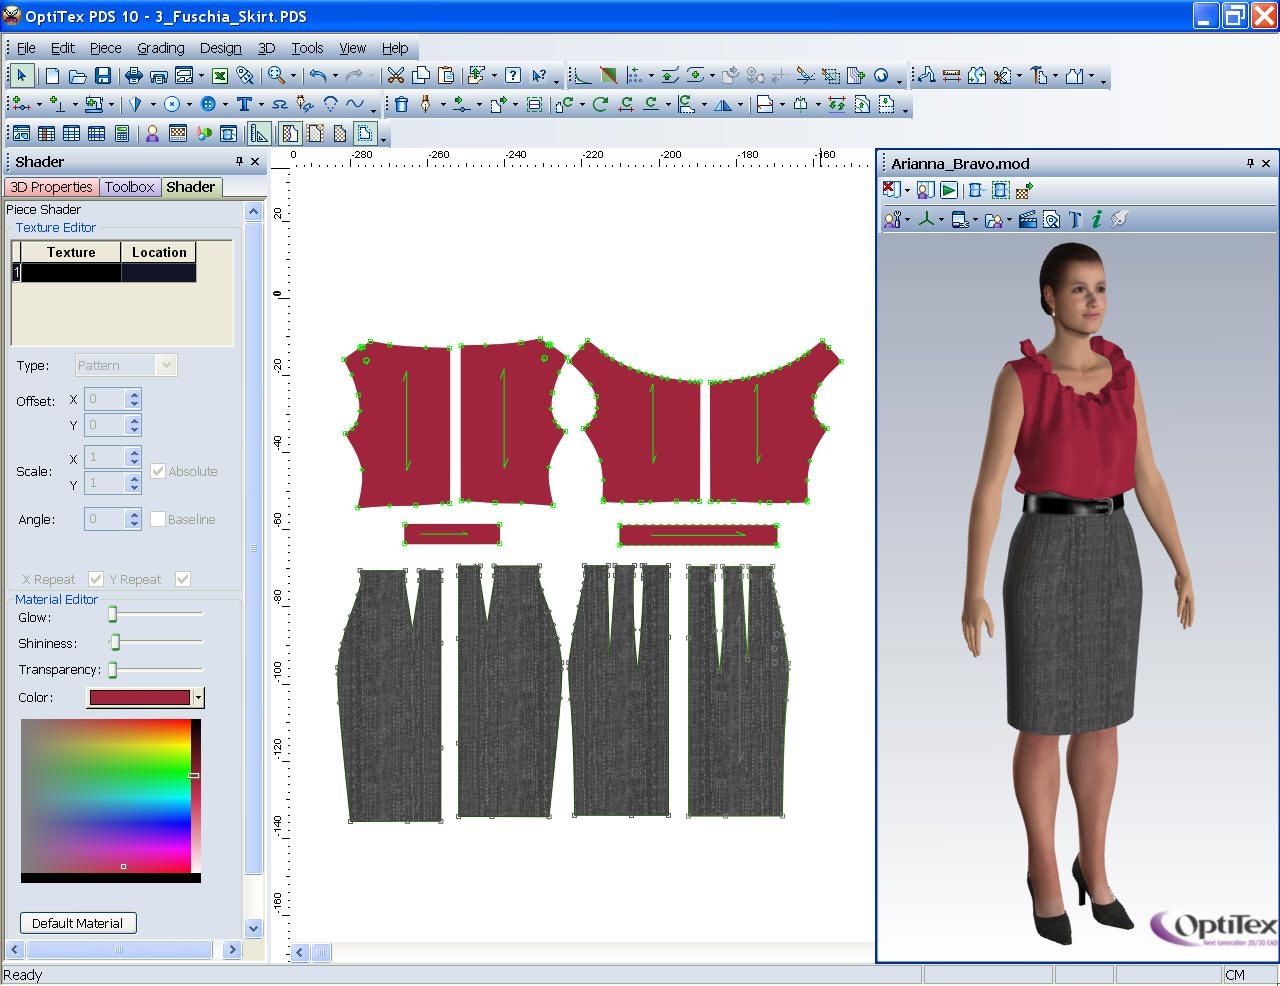 12 Sewing Patterns Tips What About Amazing Easy Sewing Projects Fashion Design Software Clothes Design Fashion Inspiration Design